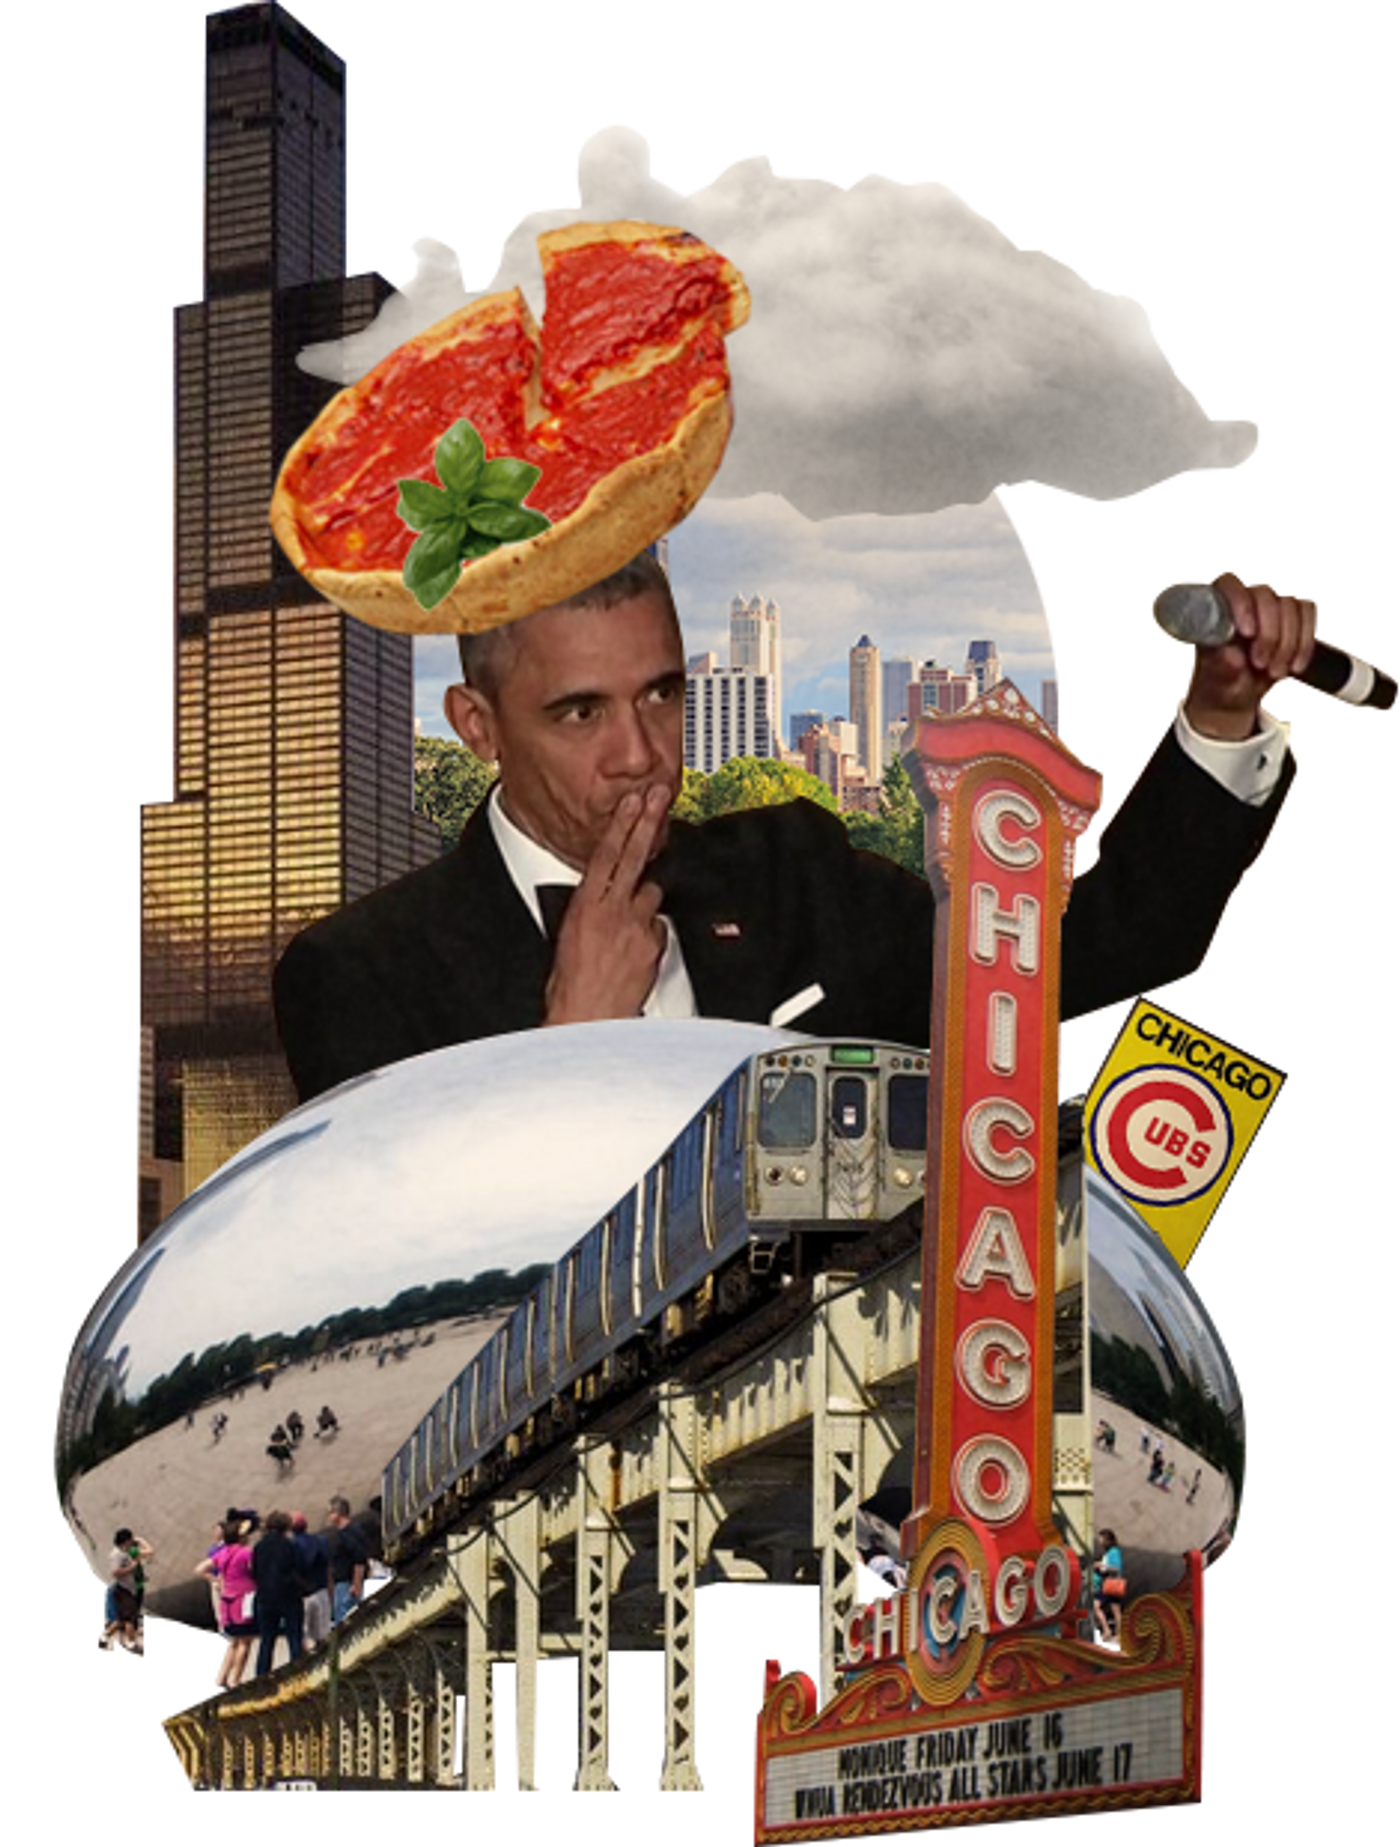 Collage of the city of Chicago with deep dish pizza and Obama.